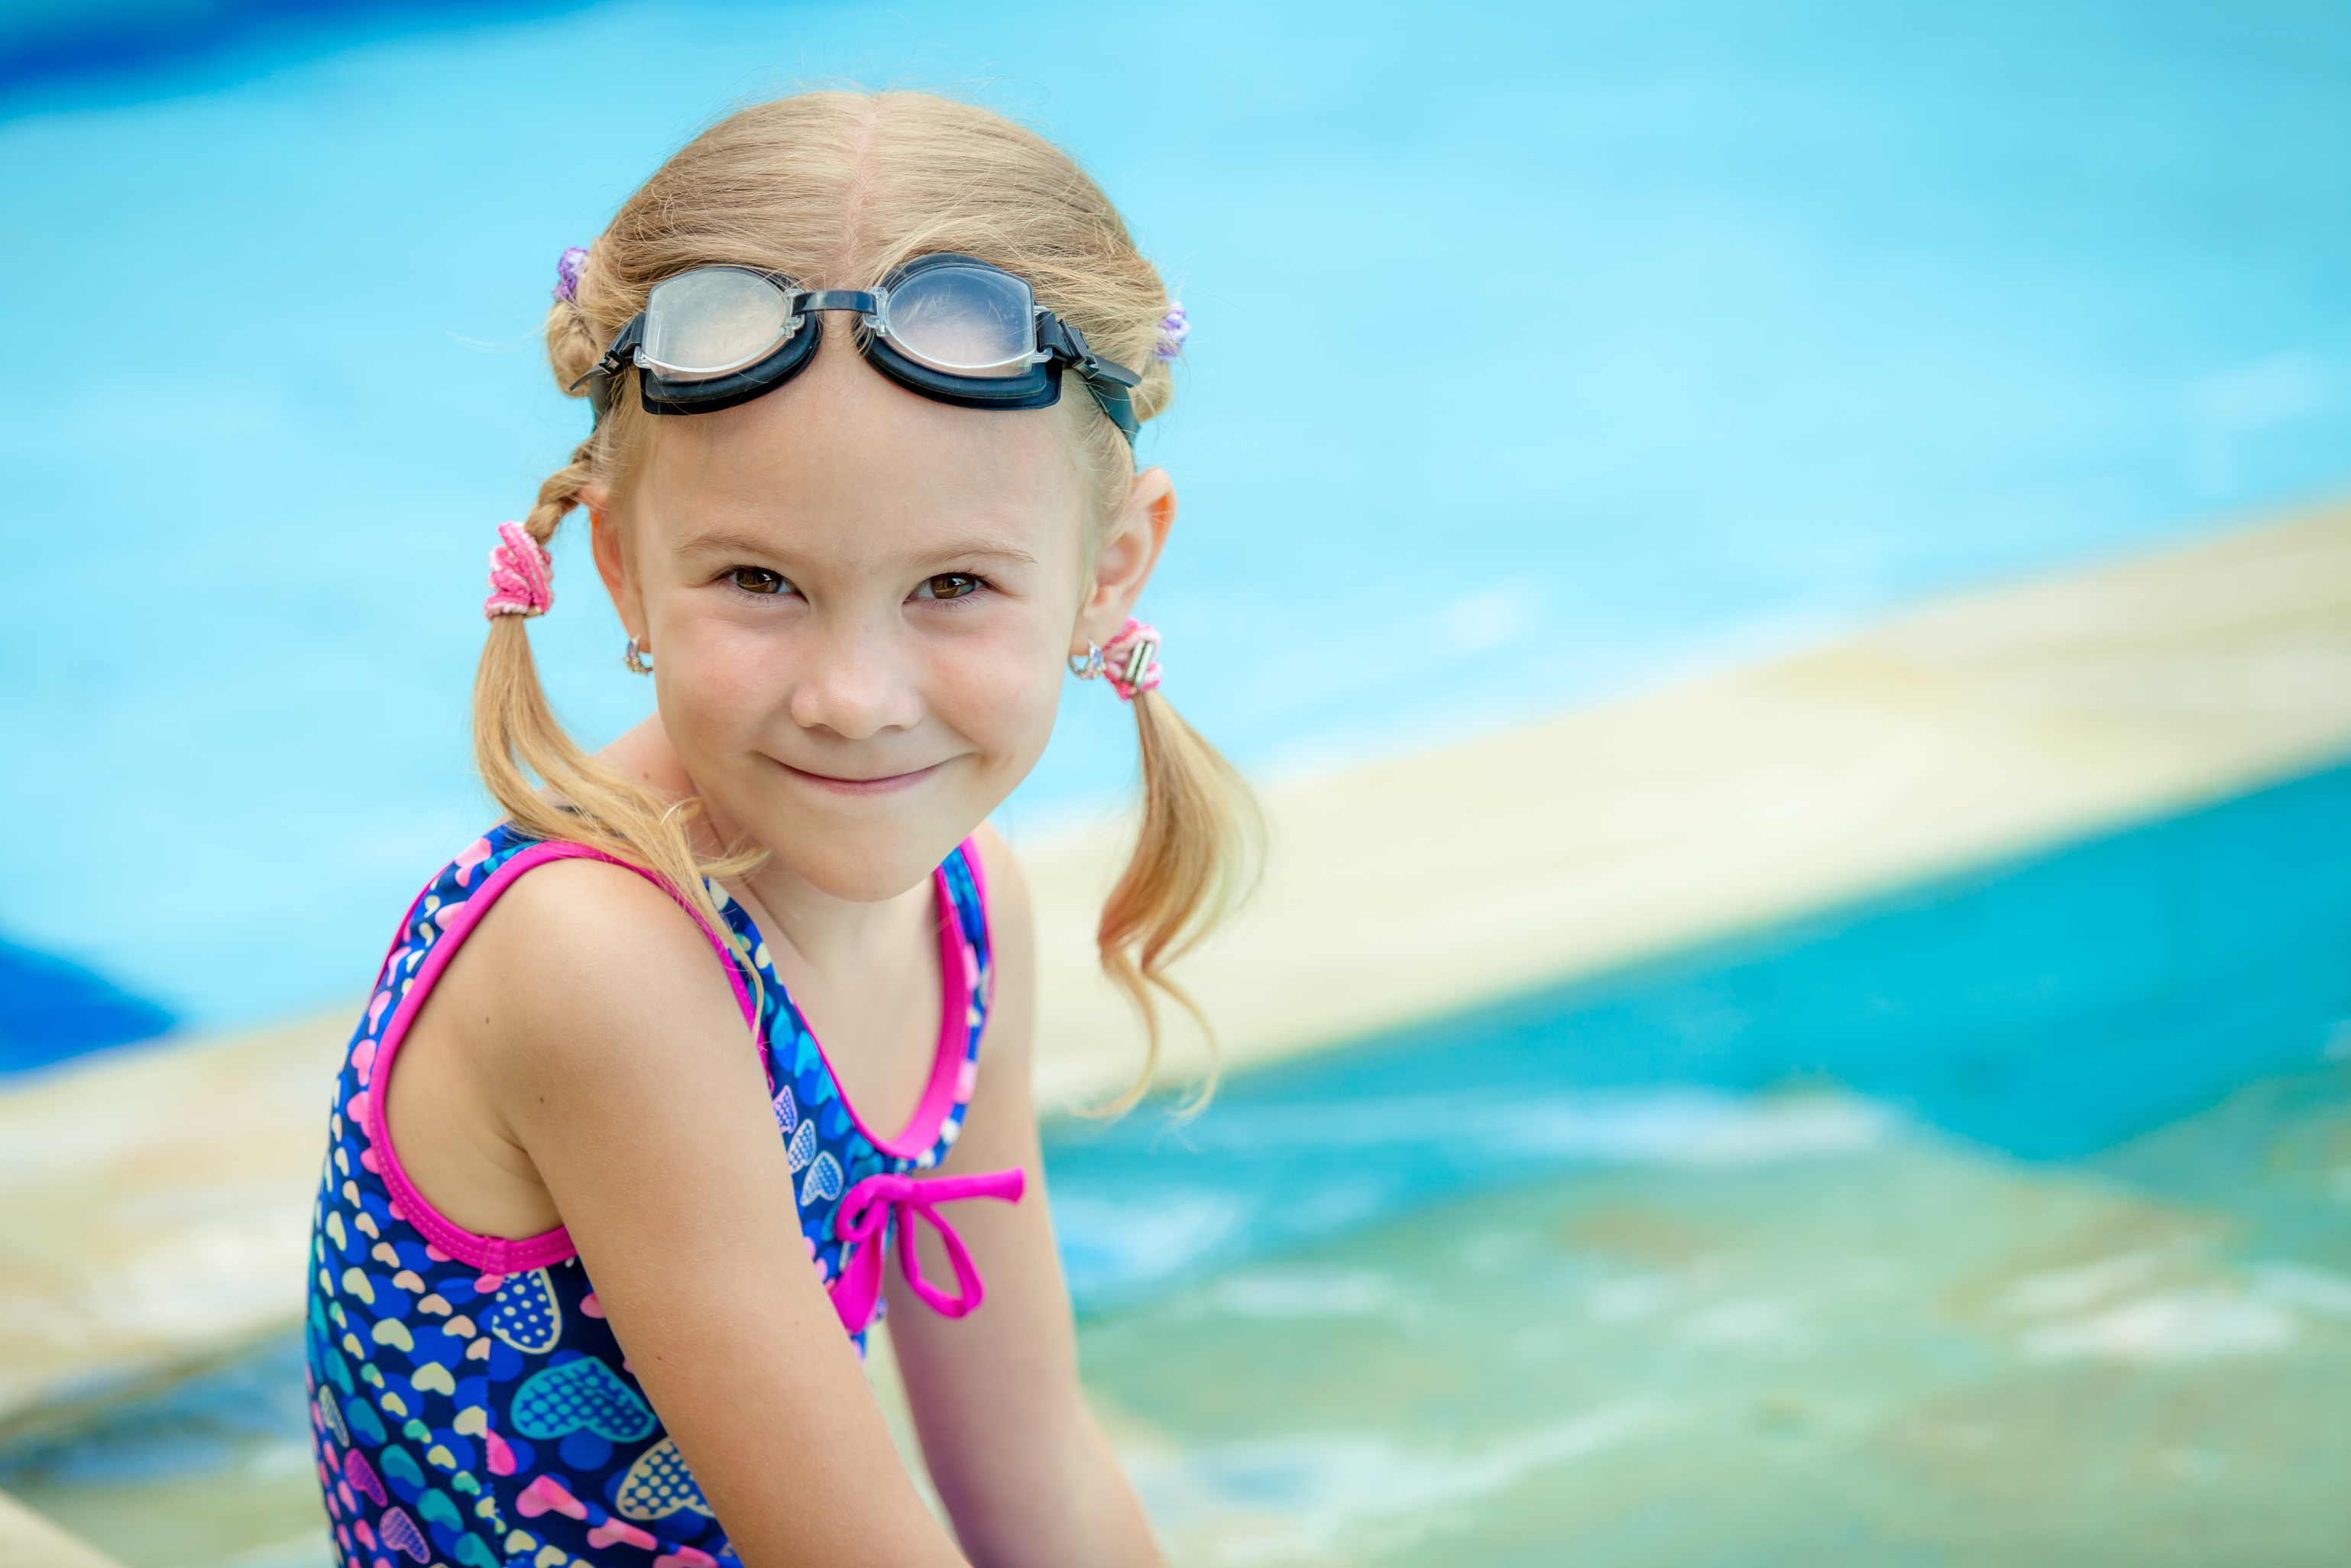 little girl sitting near swimming pool